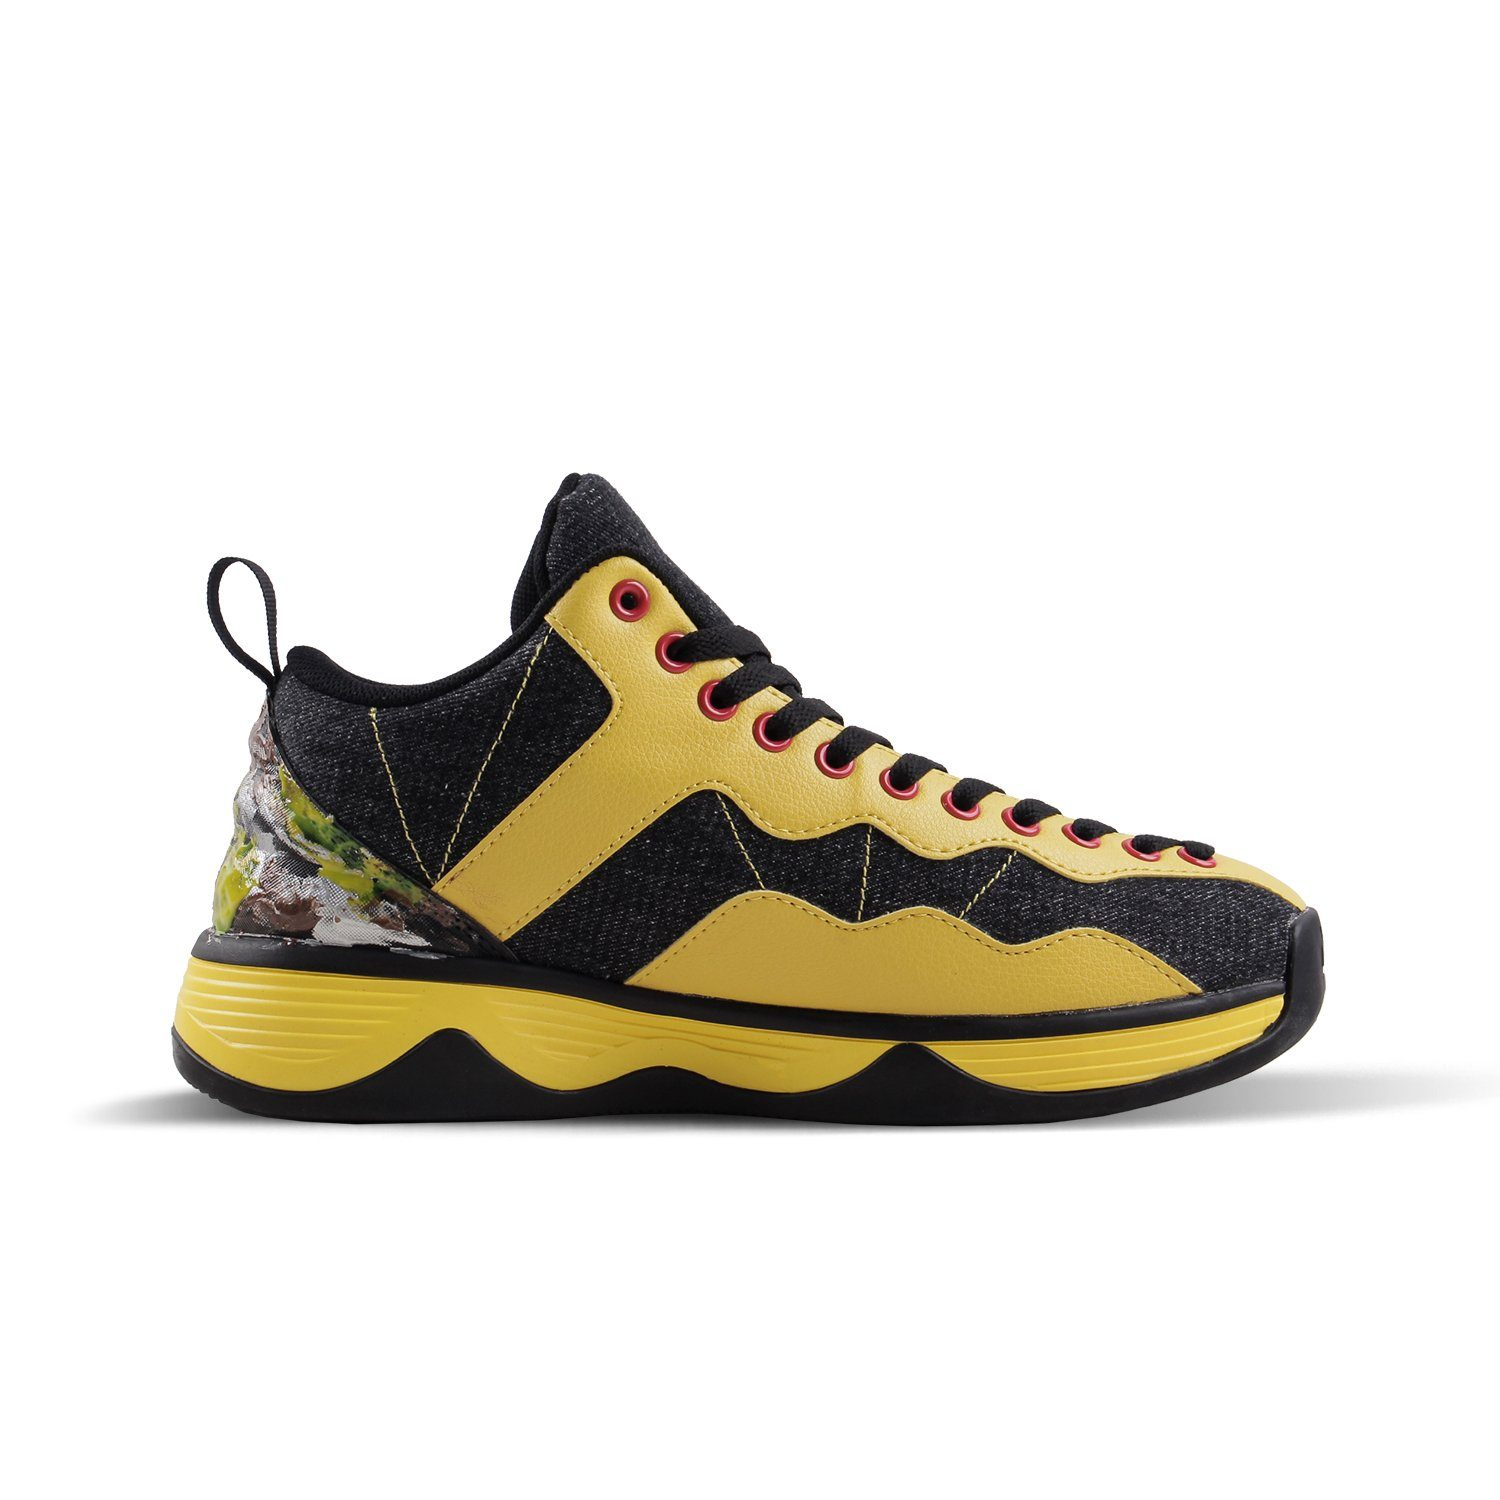 2020 Men's Basketball Shoes Yellow - Soulsfeng